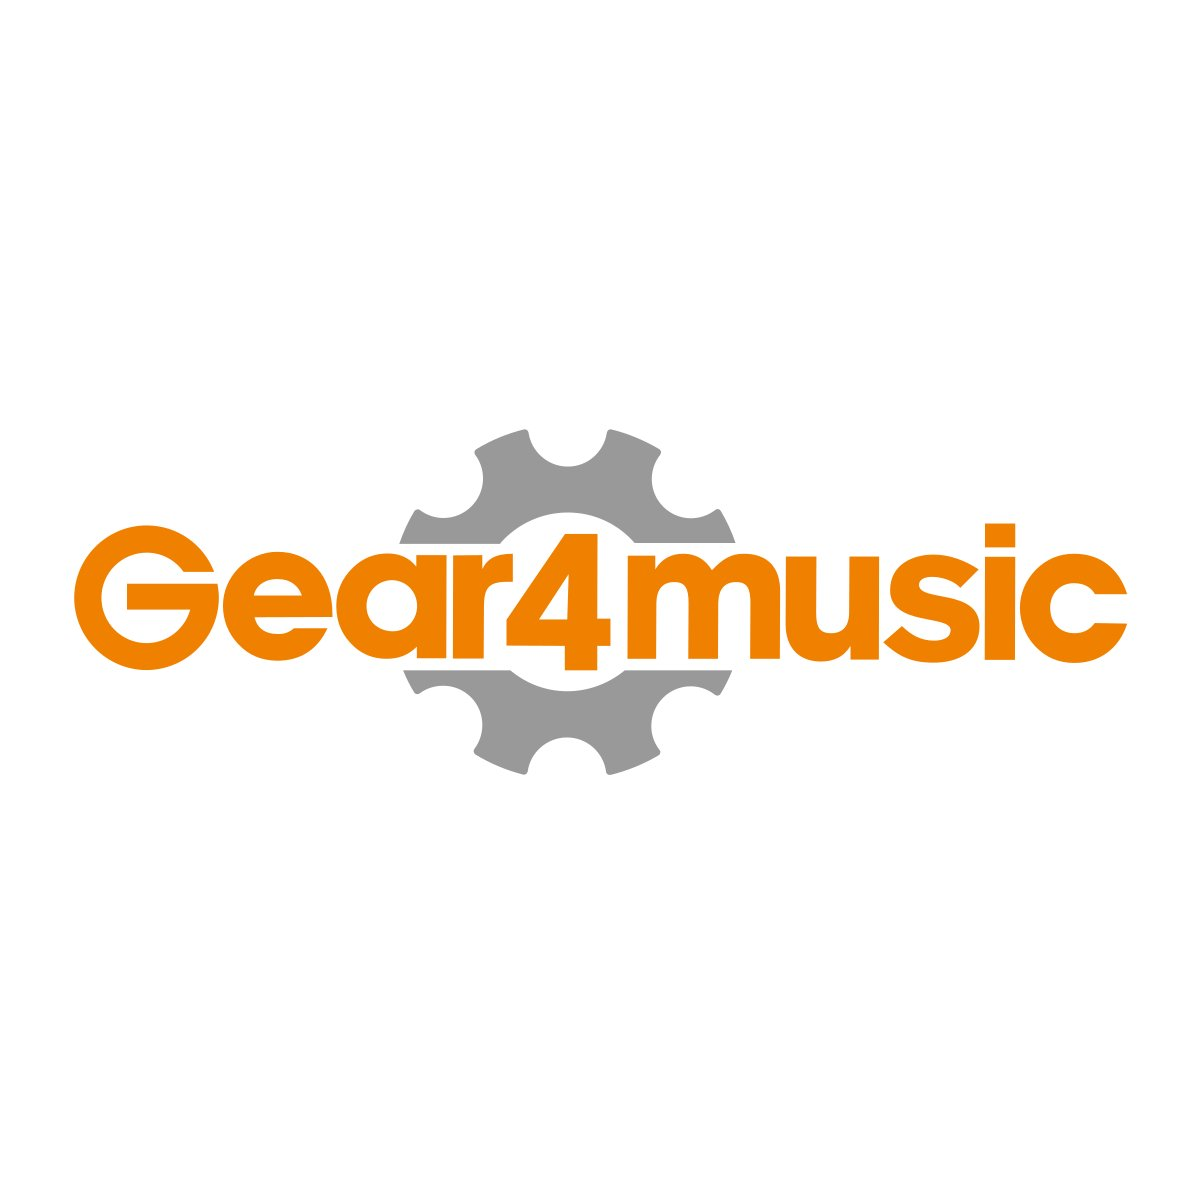 Cz2 Cimbaal Pakket door Gear4music